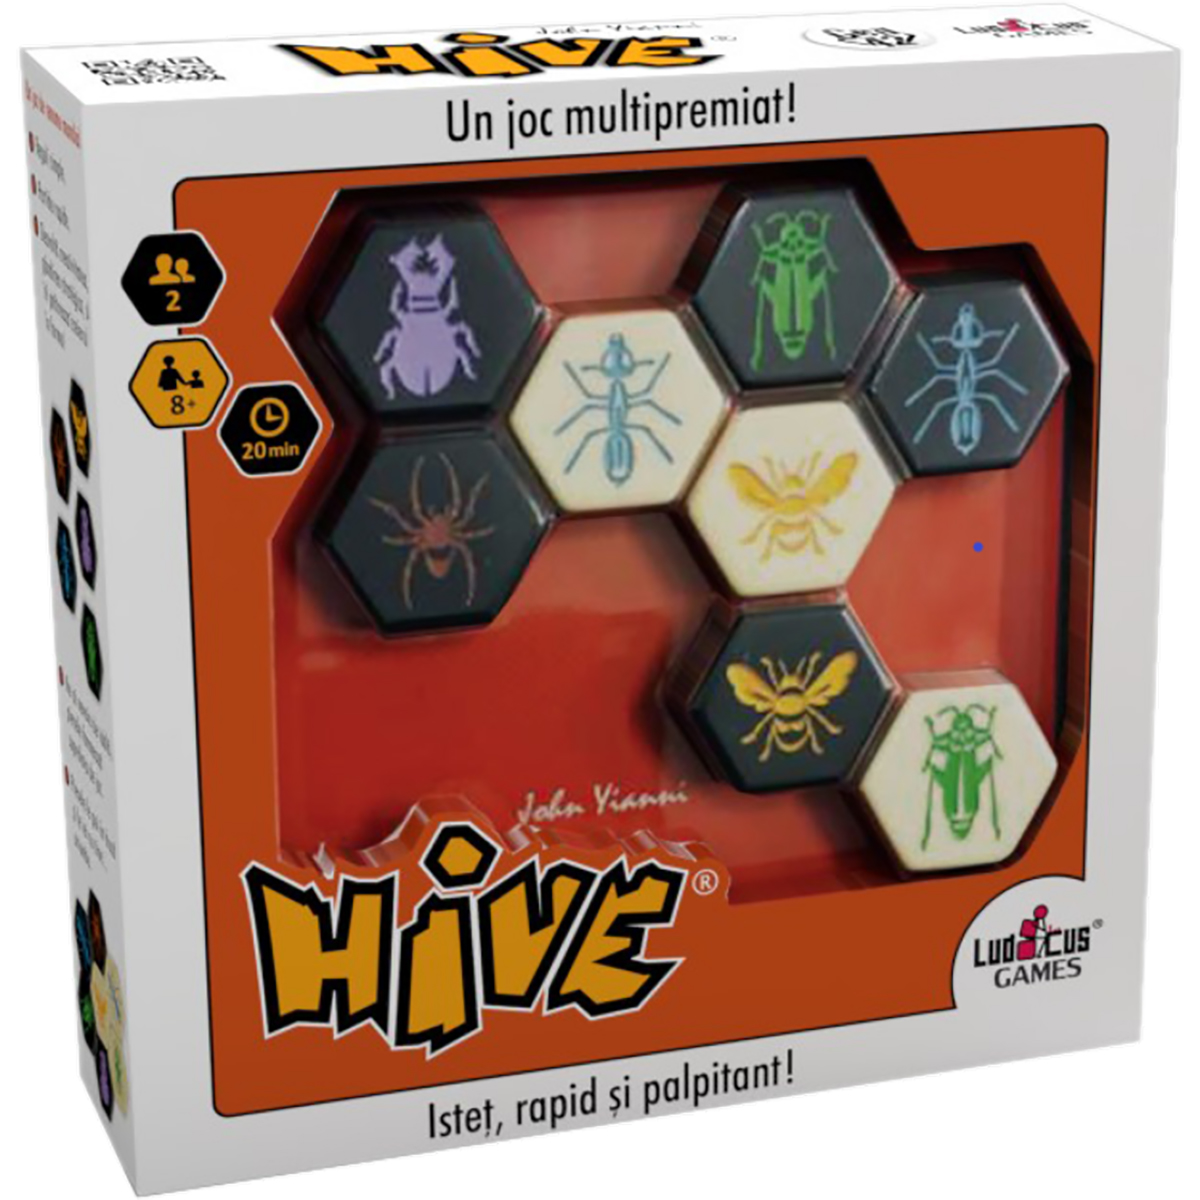 Joc de societate Ludicus Games, Hive